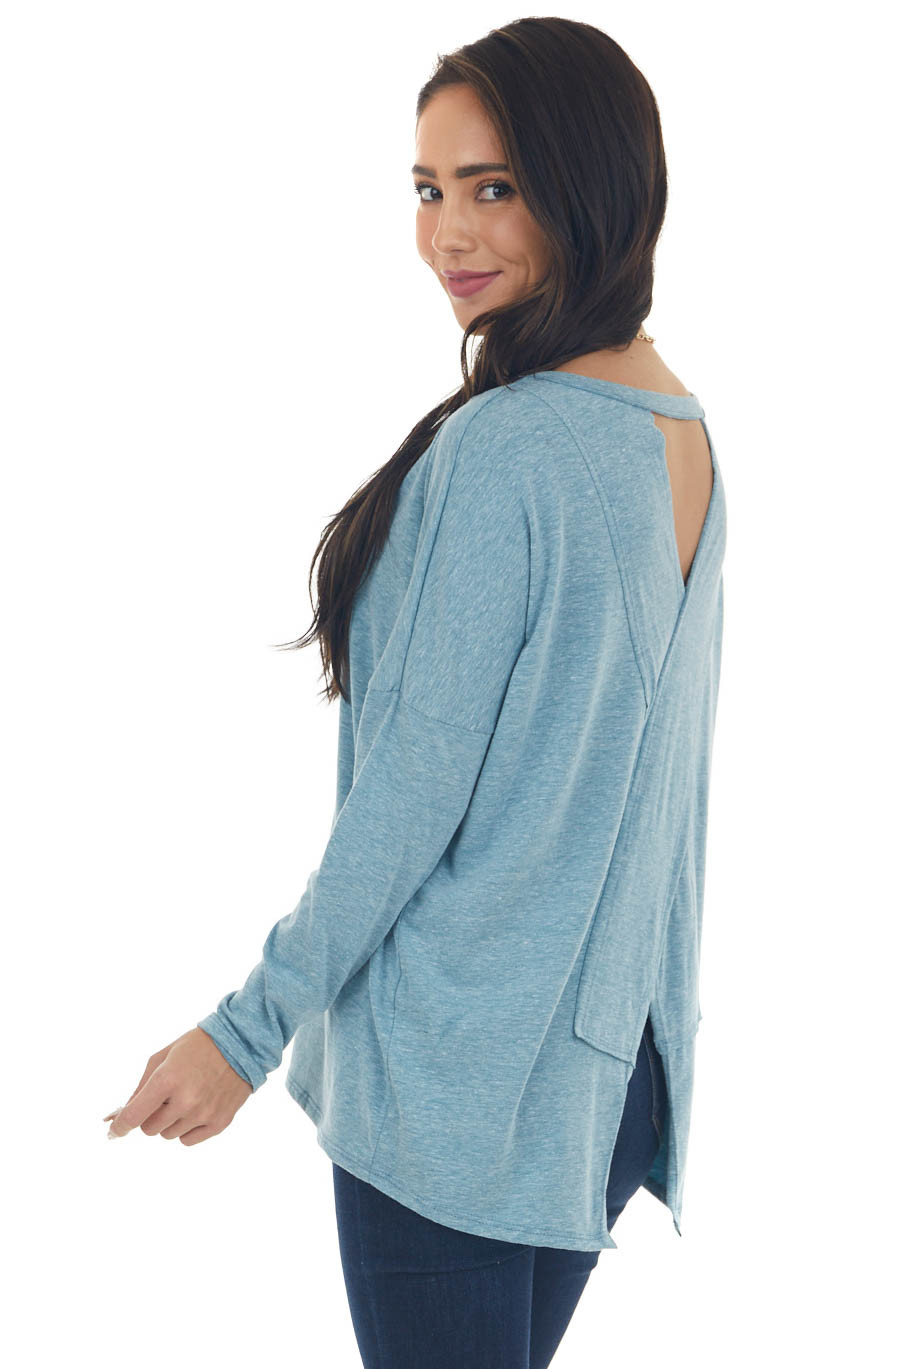 Heathered Blue Criss Cross Back Cut Out Top